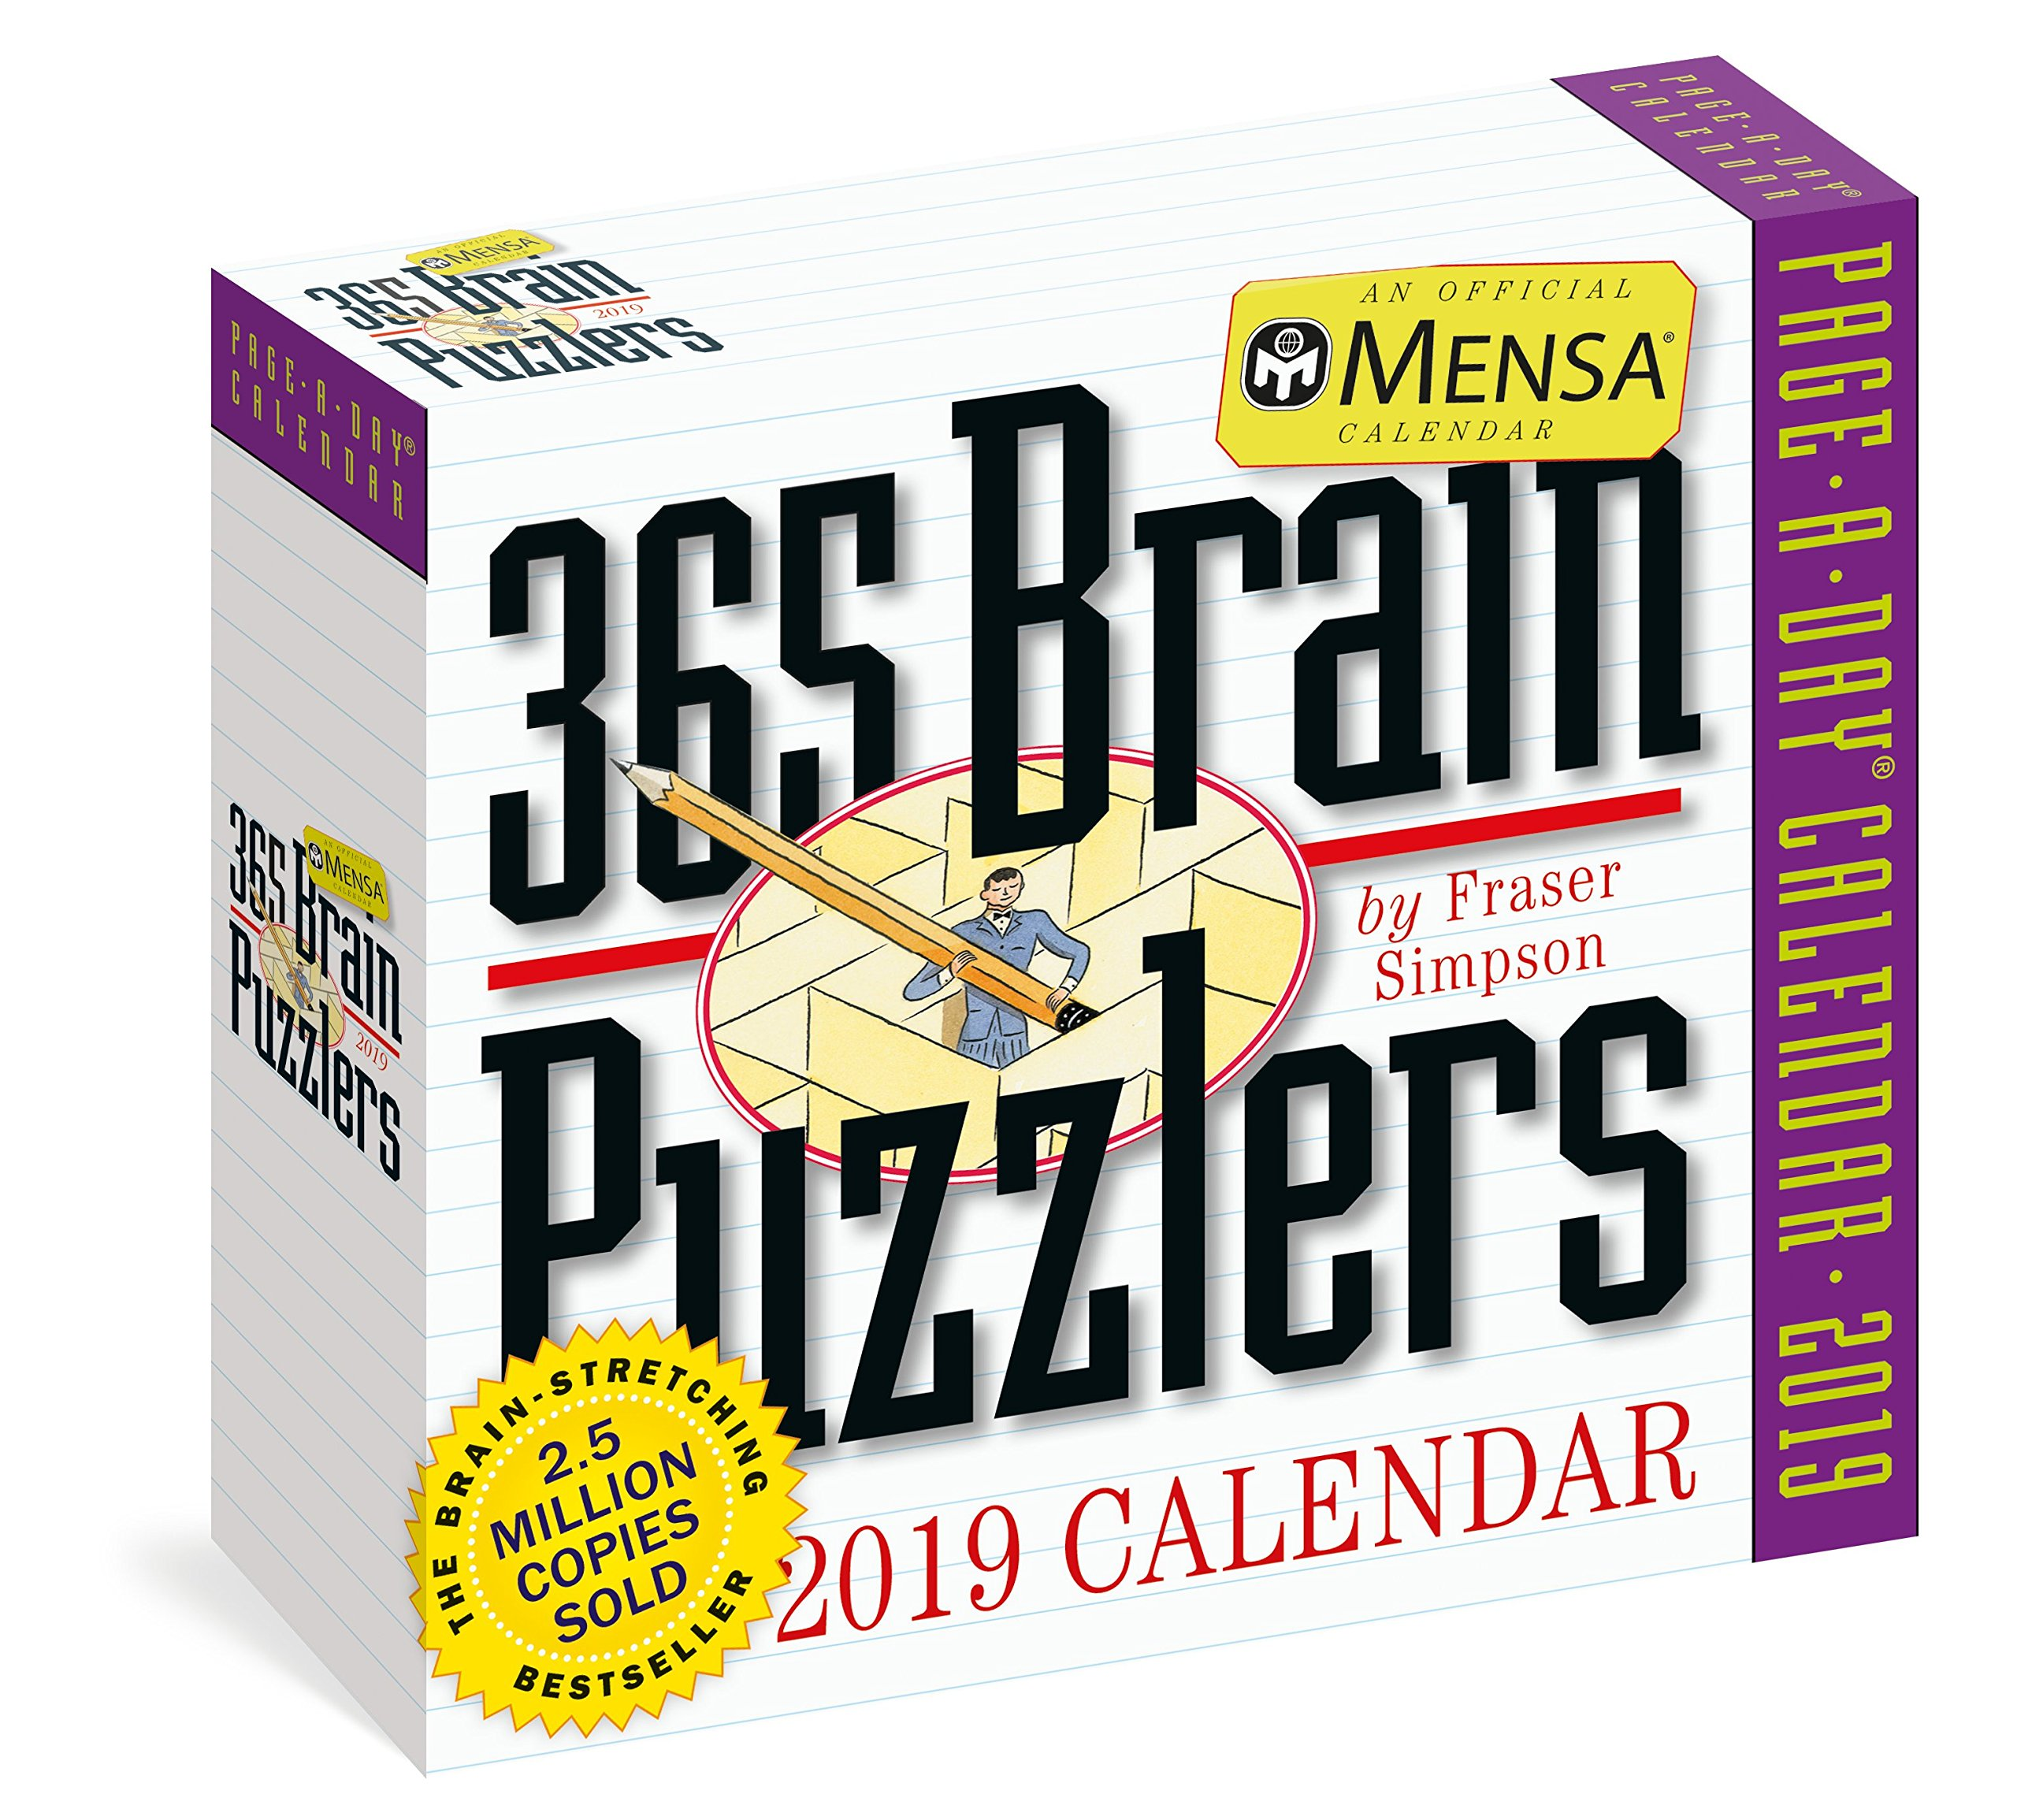 Mensa 365 Brain Puzzlers Page-A-Day Calendar 2019 Calendar – Day to Day Calendar, August 7, 2018 Fraser Simpson Workman Publishing Company 1523502711 Calendars